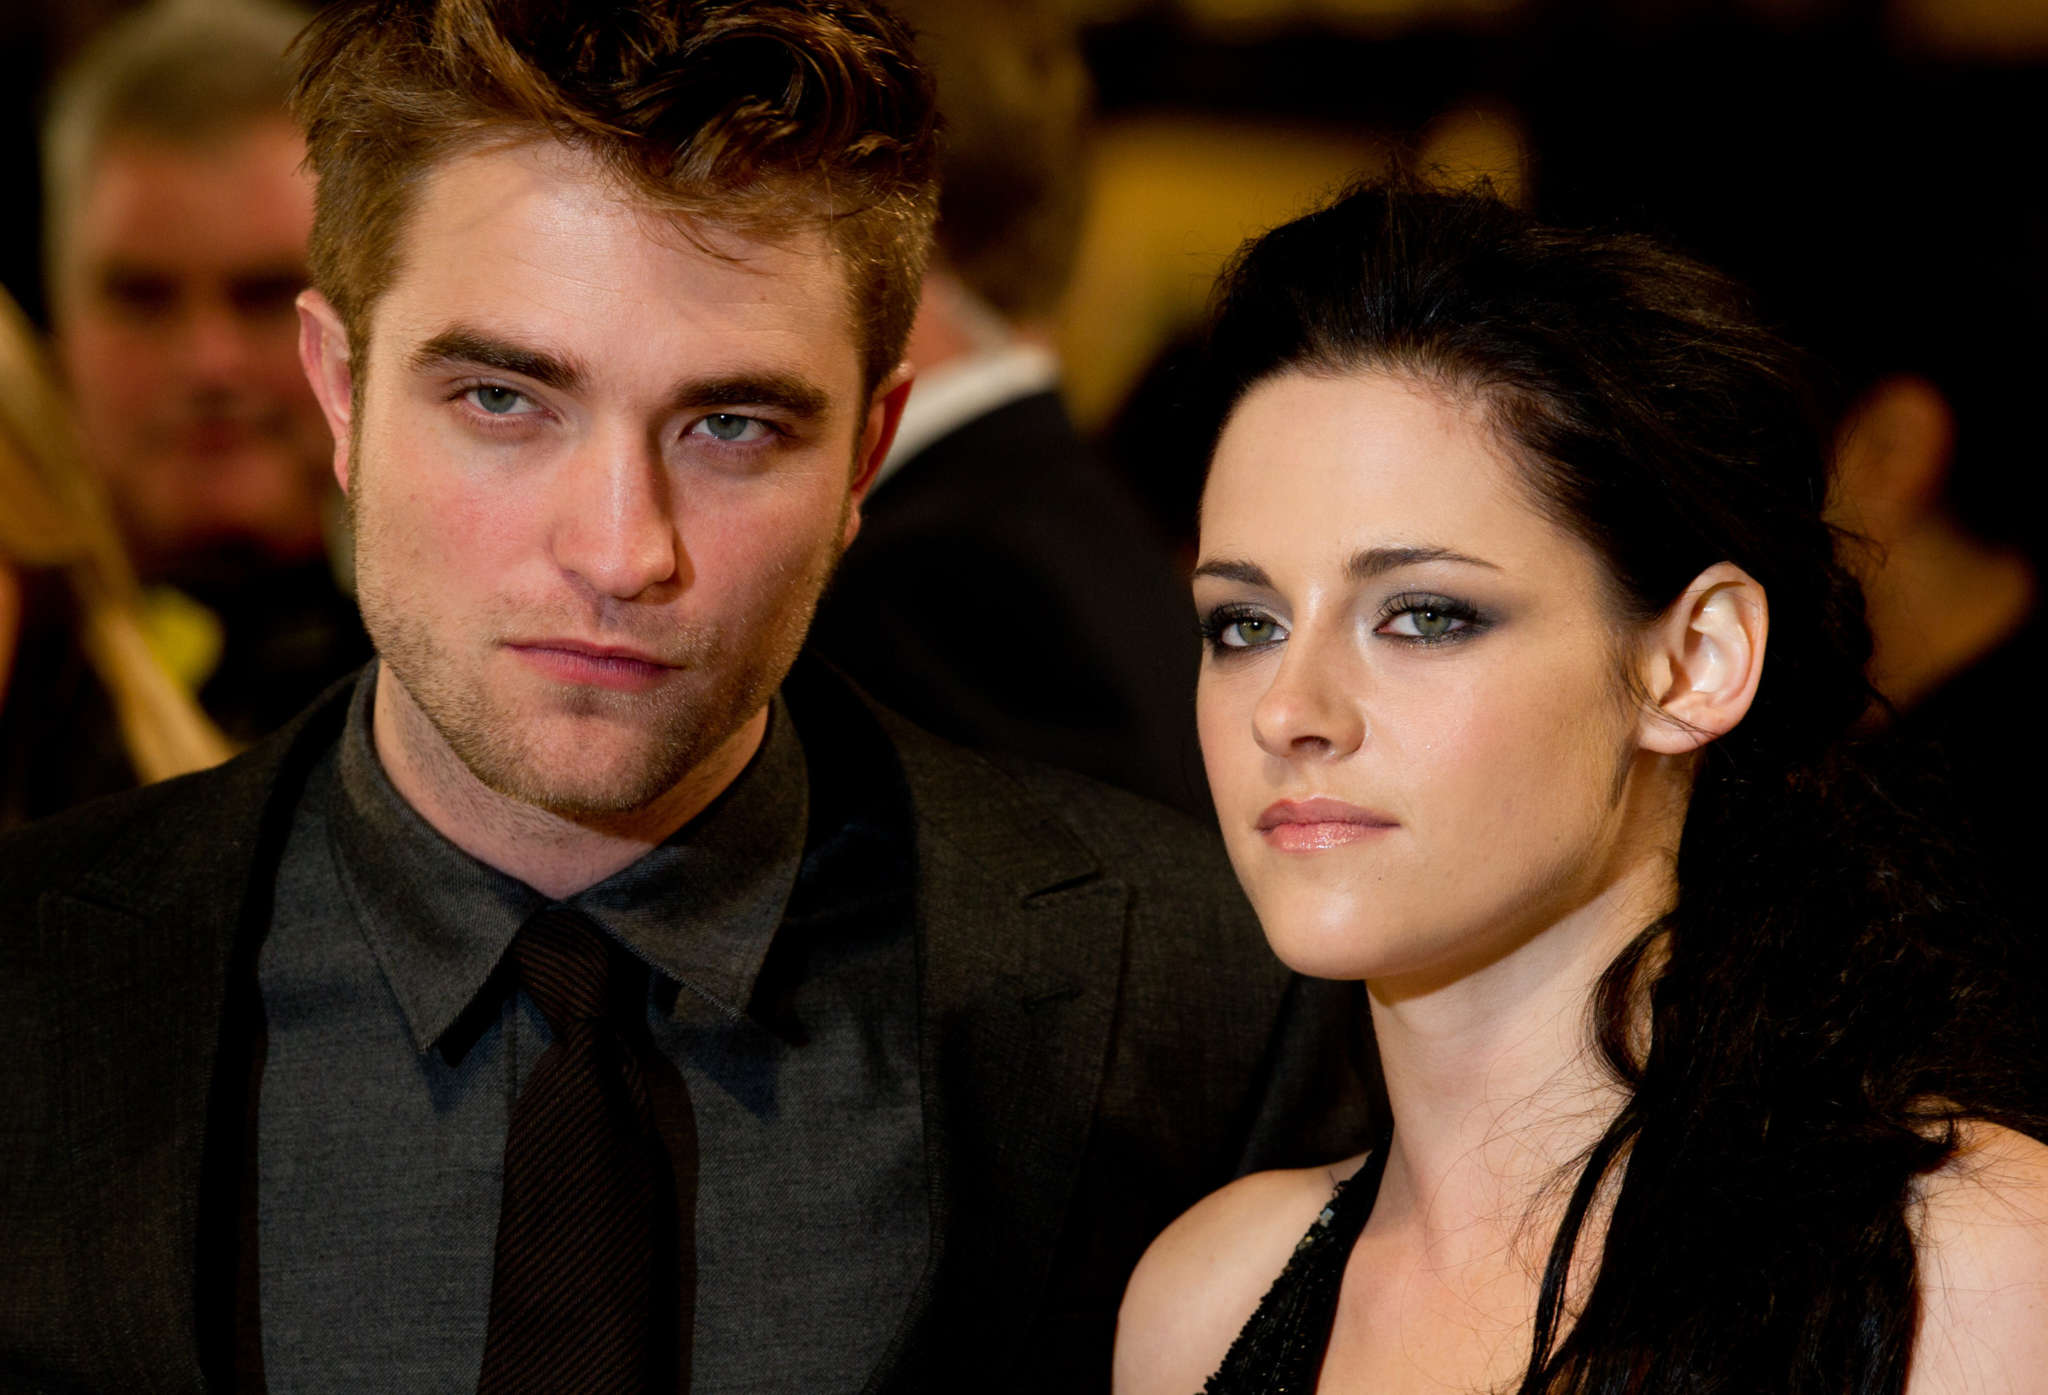 Kristen Stewart's 'very happy' ex Robert Pattinson is playing Batman